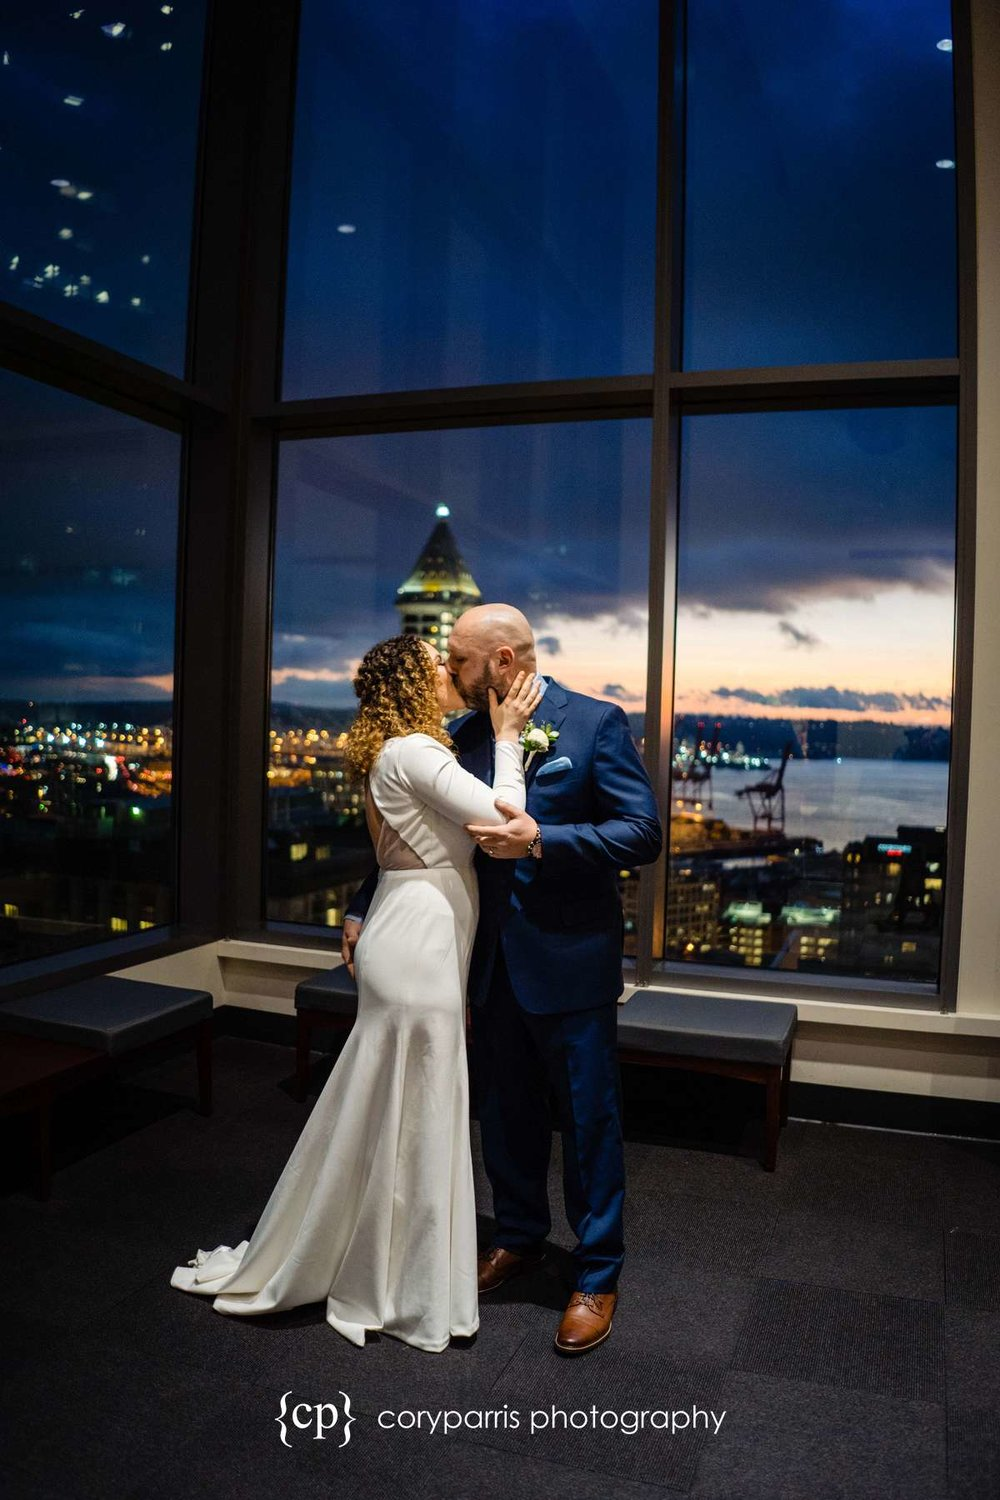 185-Seattle-Elope-Courthouse.jpg